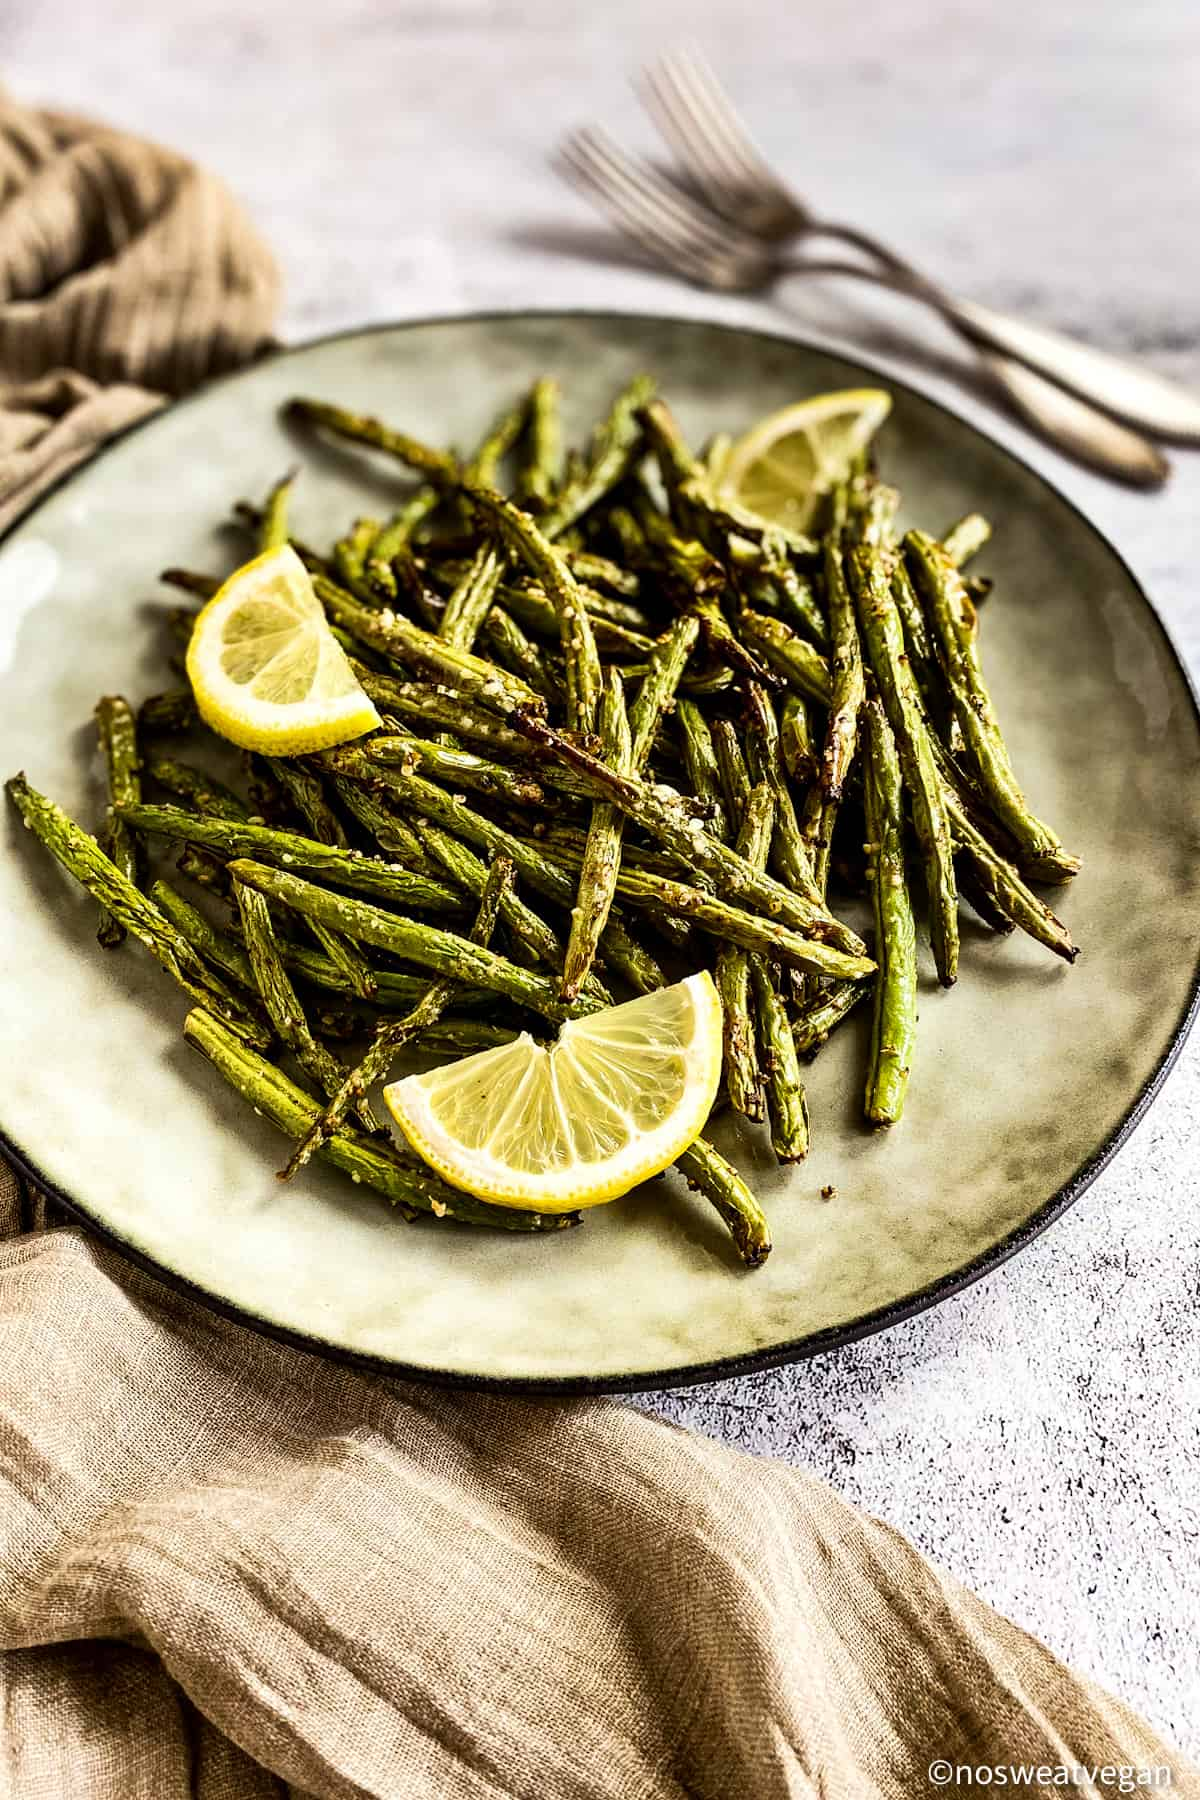 Green beans cooked in the air fryer on plated with lemon wedges.